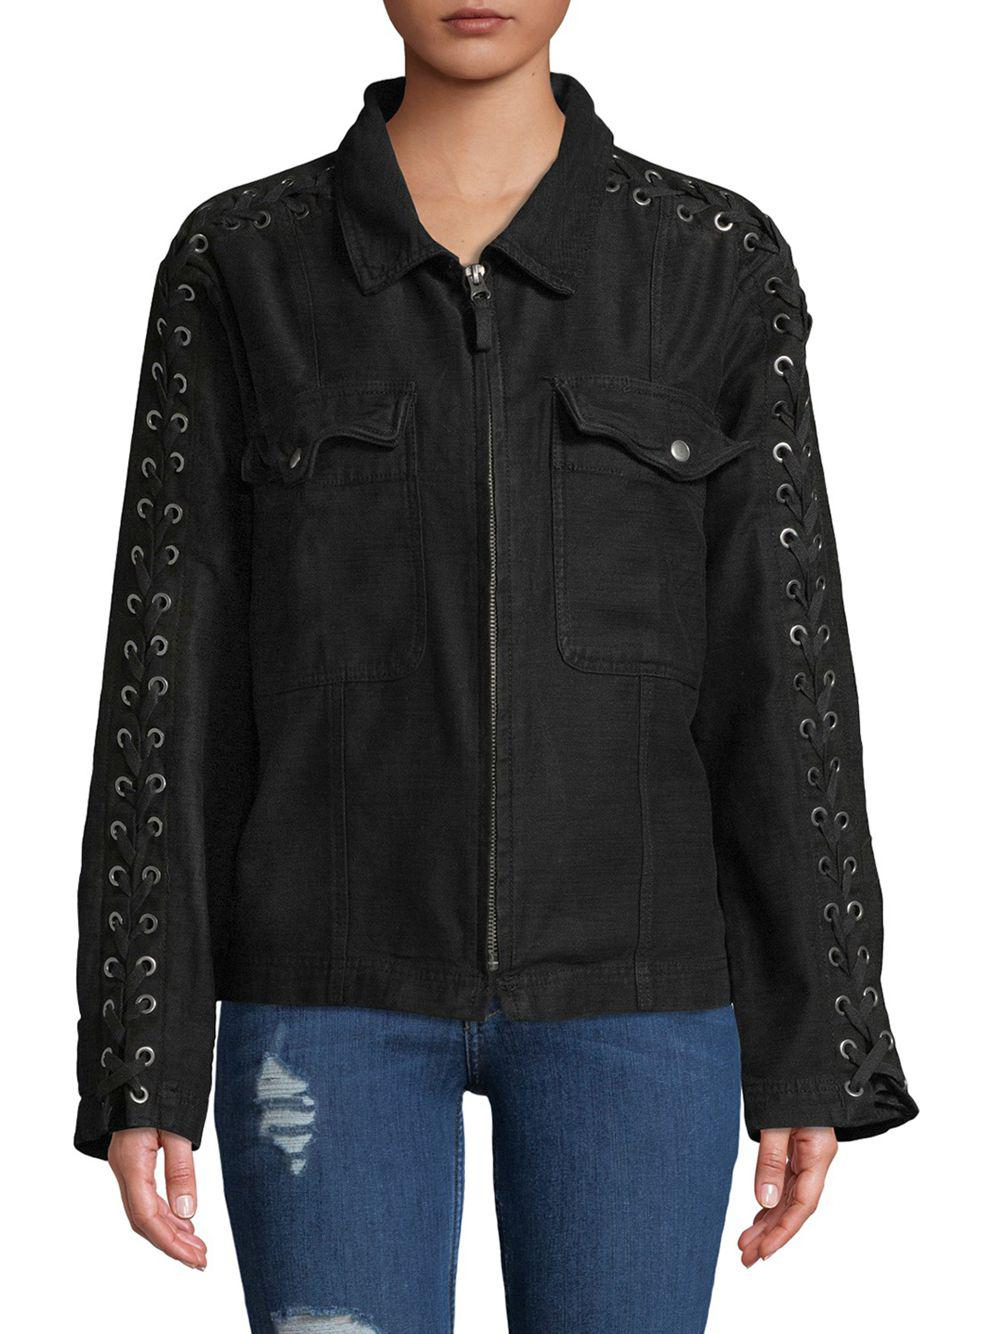 023583a6d5 Lyst - Free People Faye Collared Cotton Jacket in Black